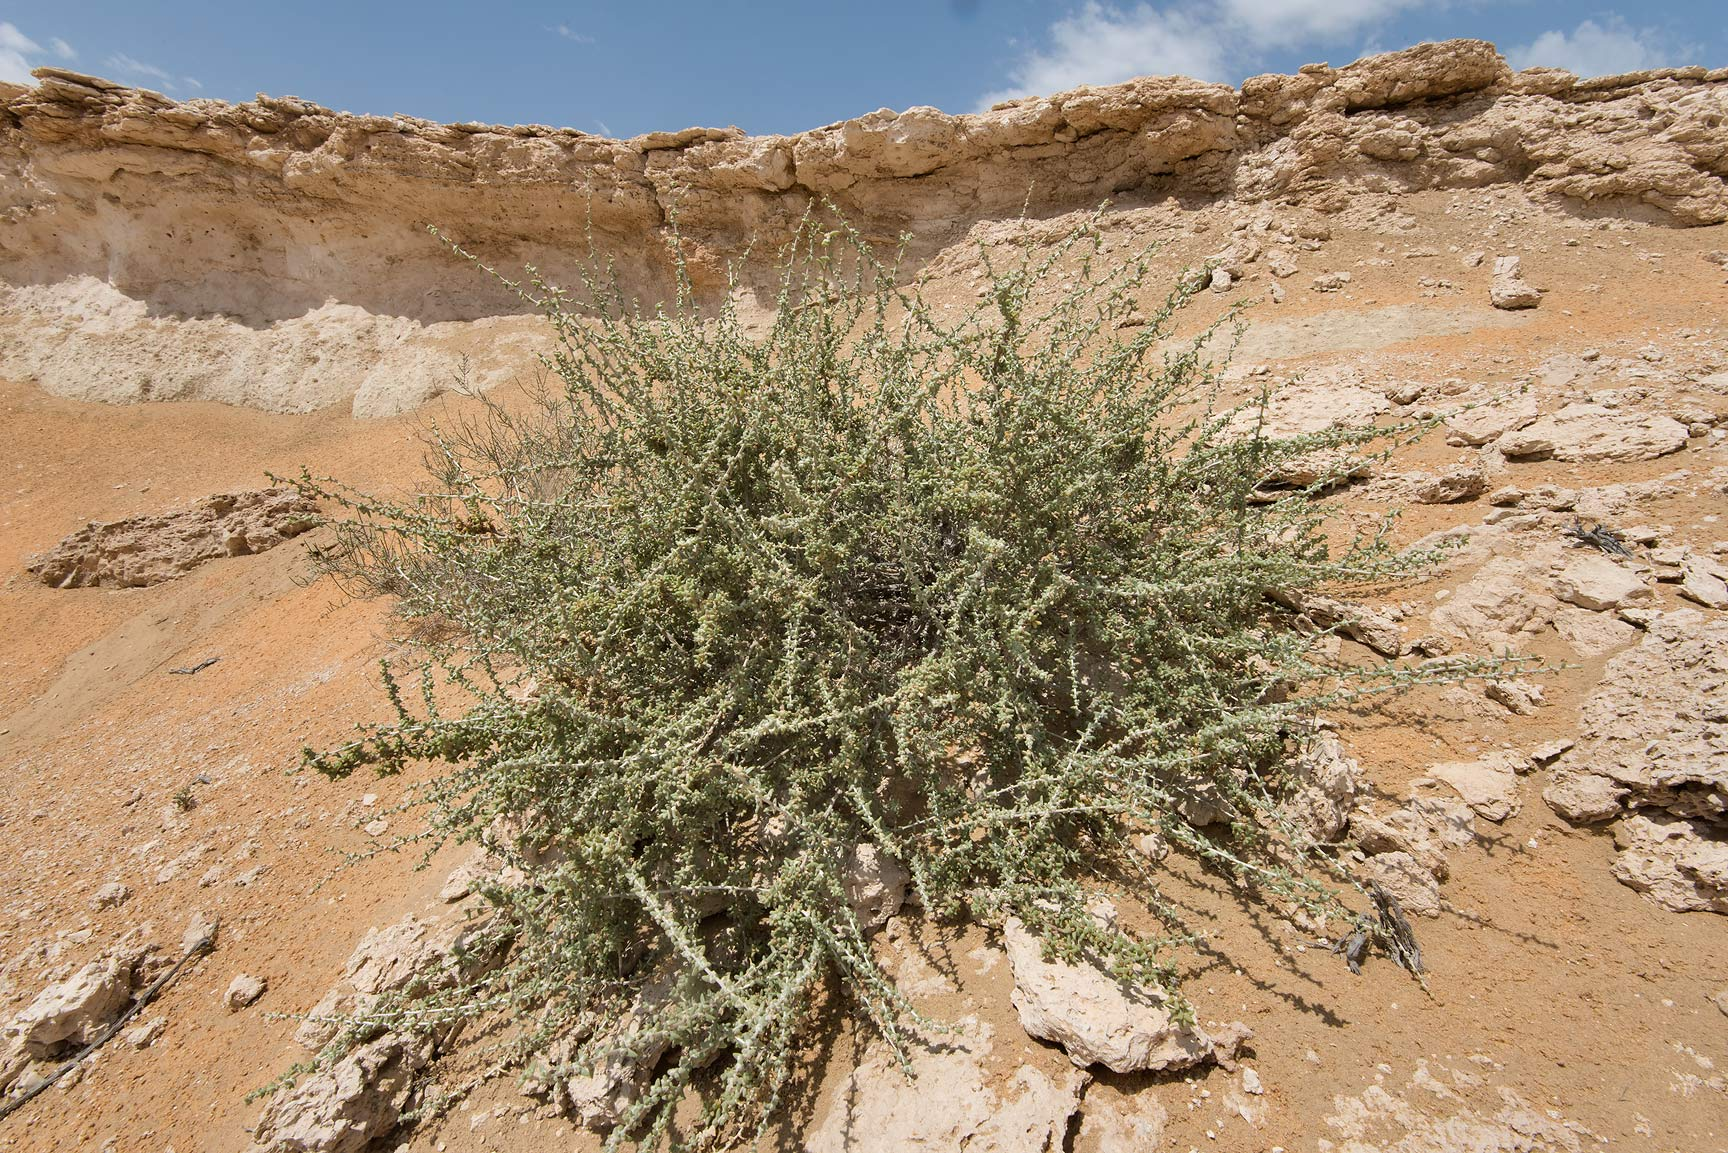 Bush of Traganum nudatum (local name dumran) on a...Reserve near Abu Samra. Southern Qatar